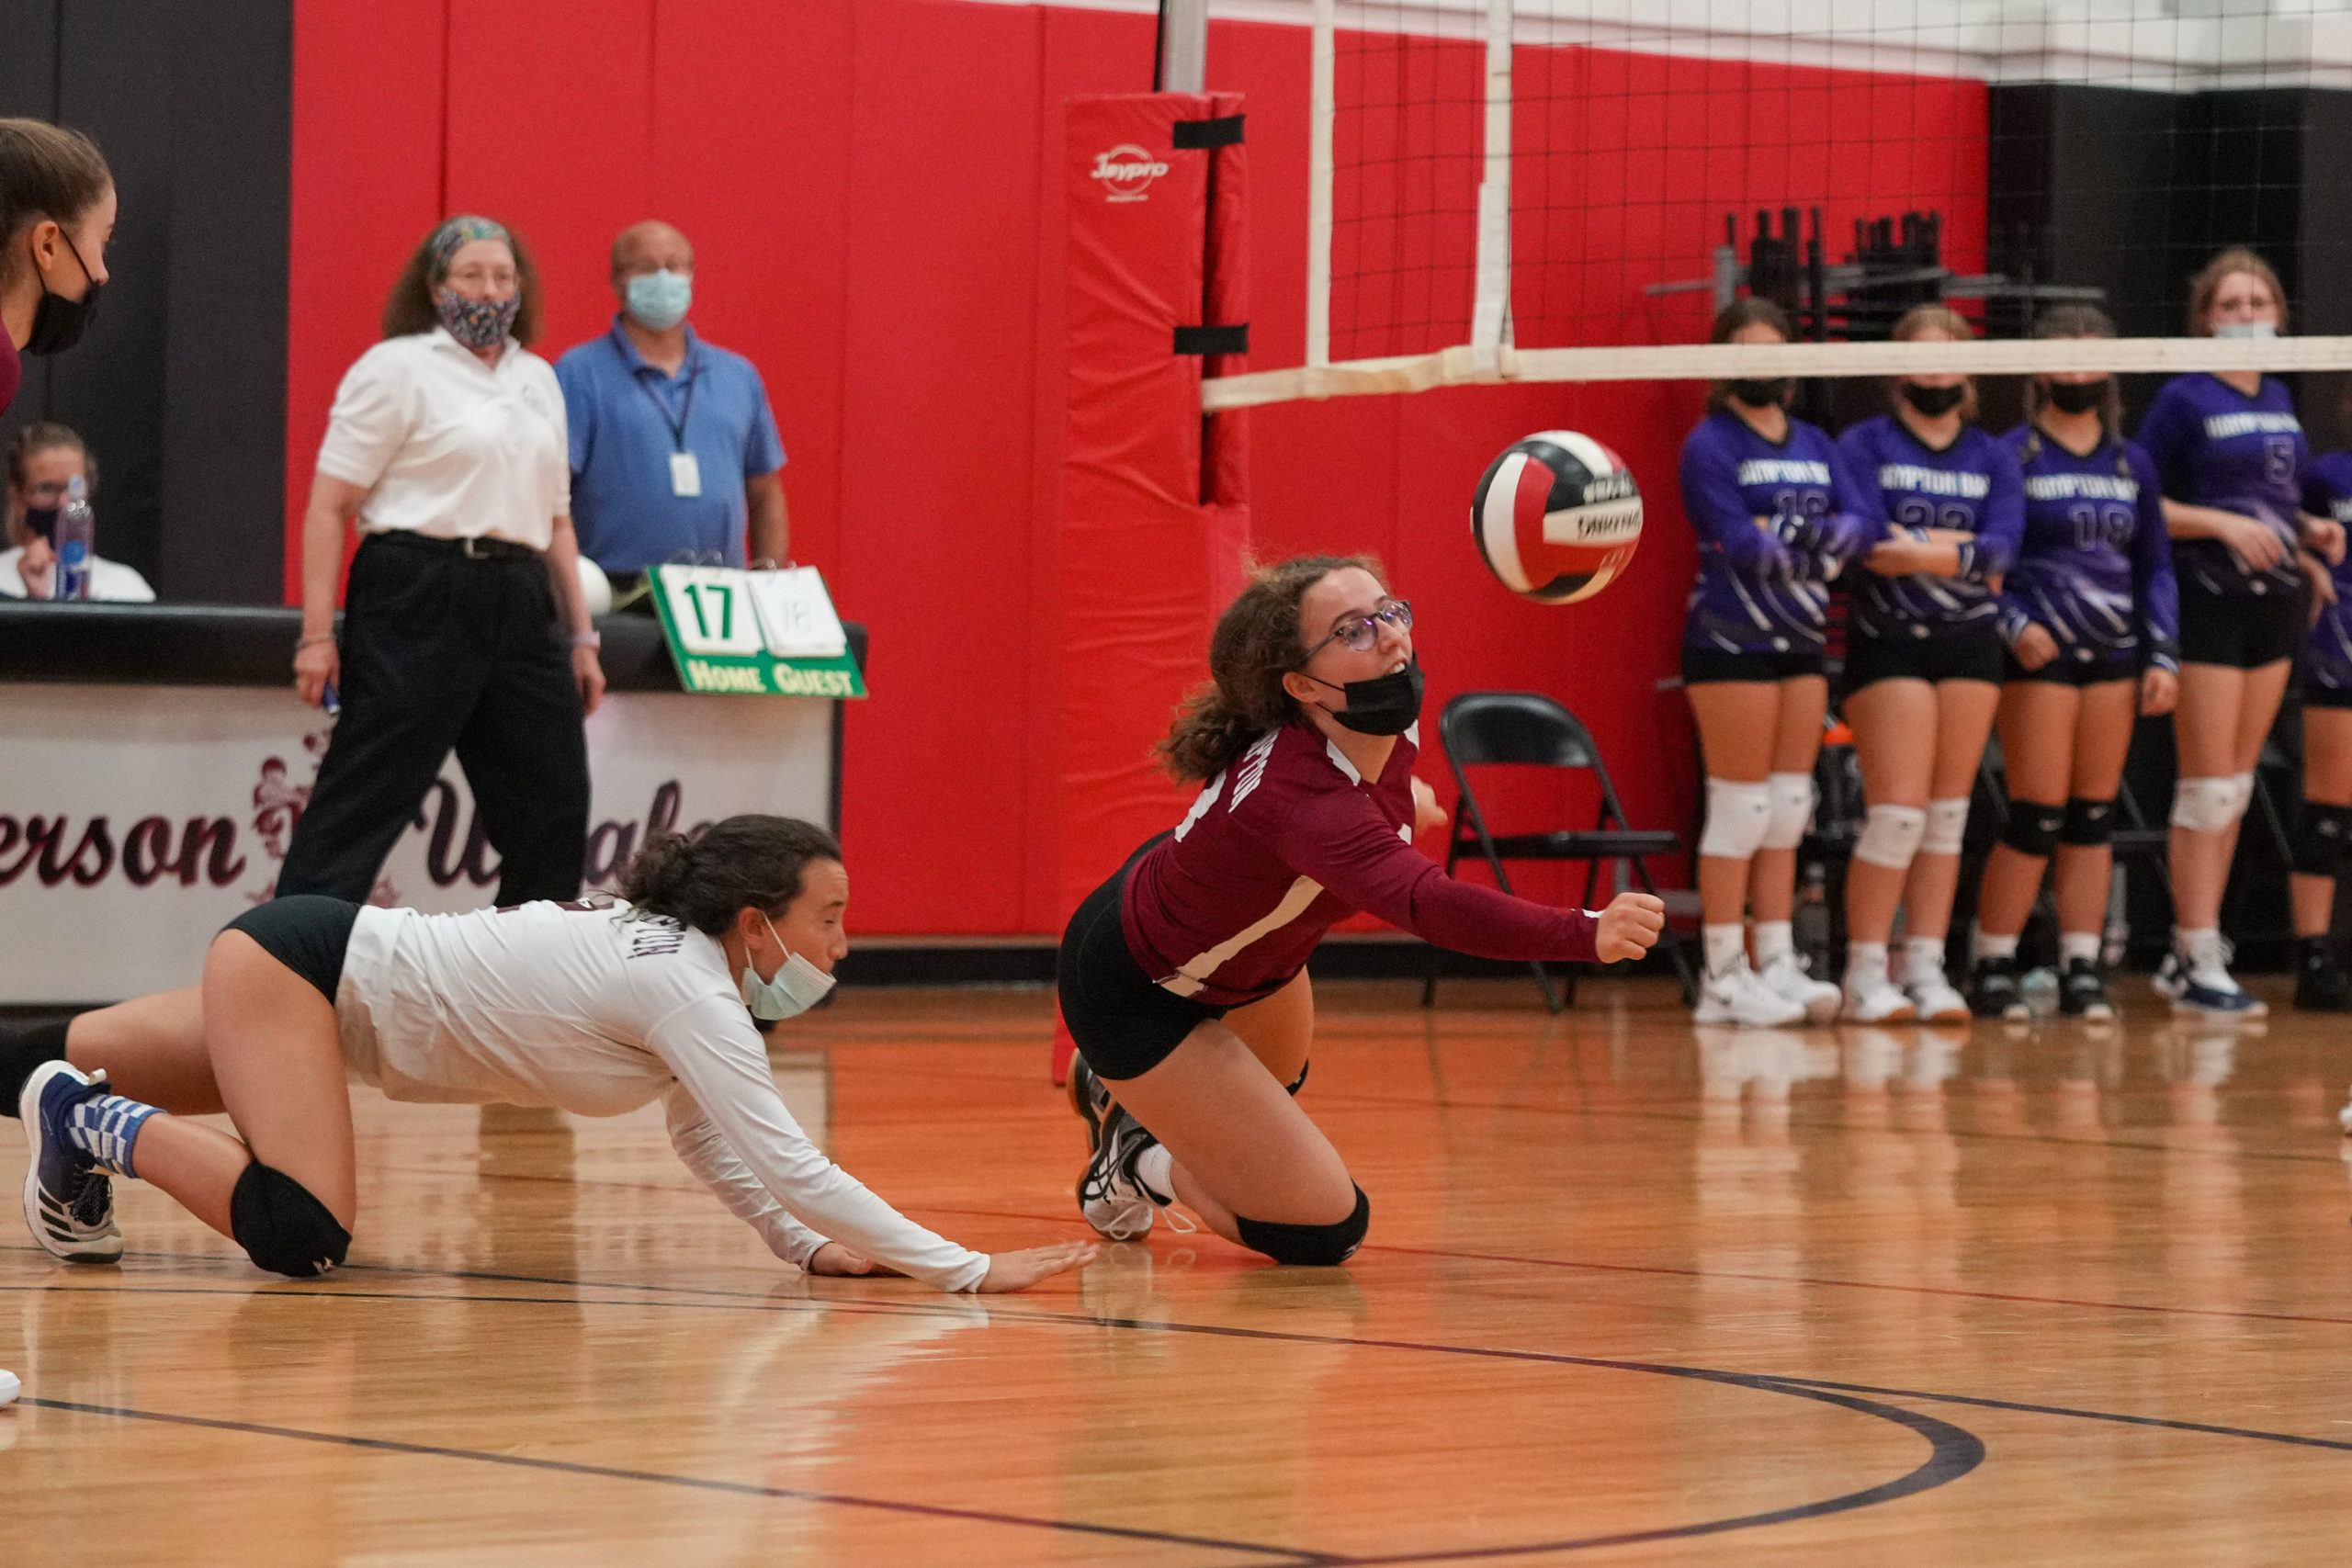 An East Hampton player dives for the ball.